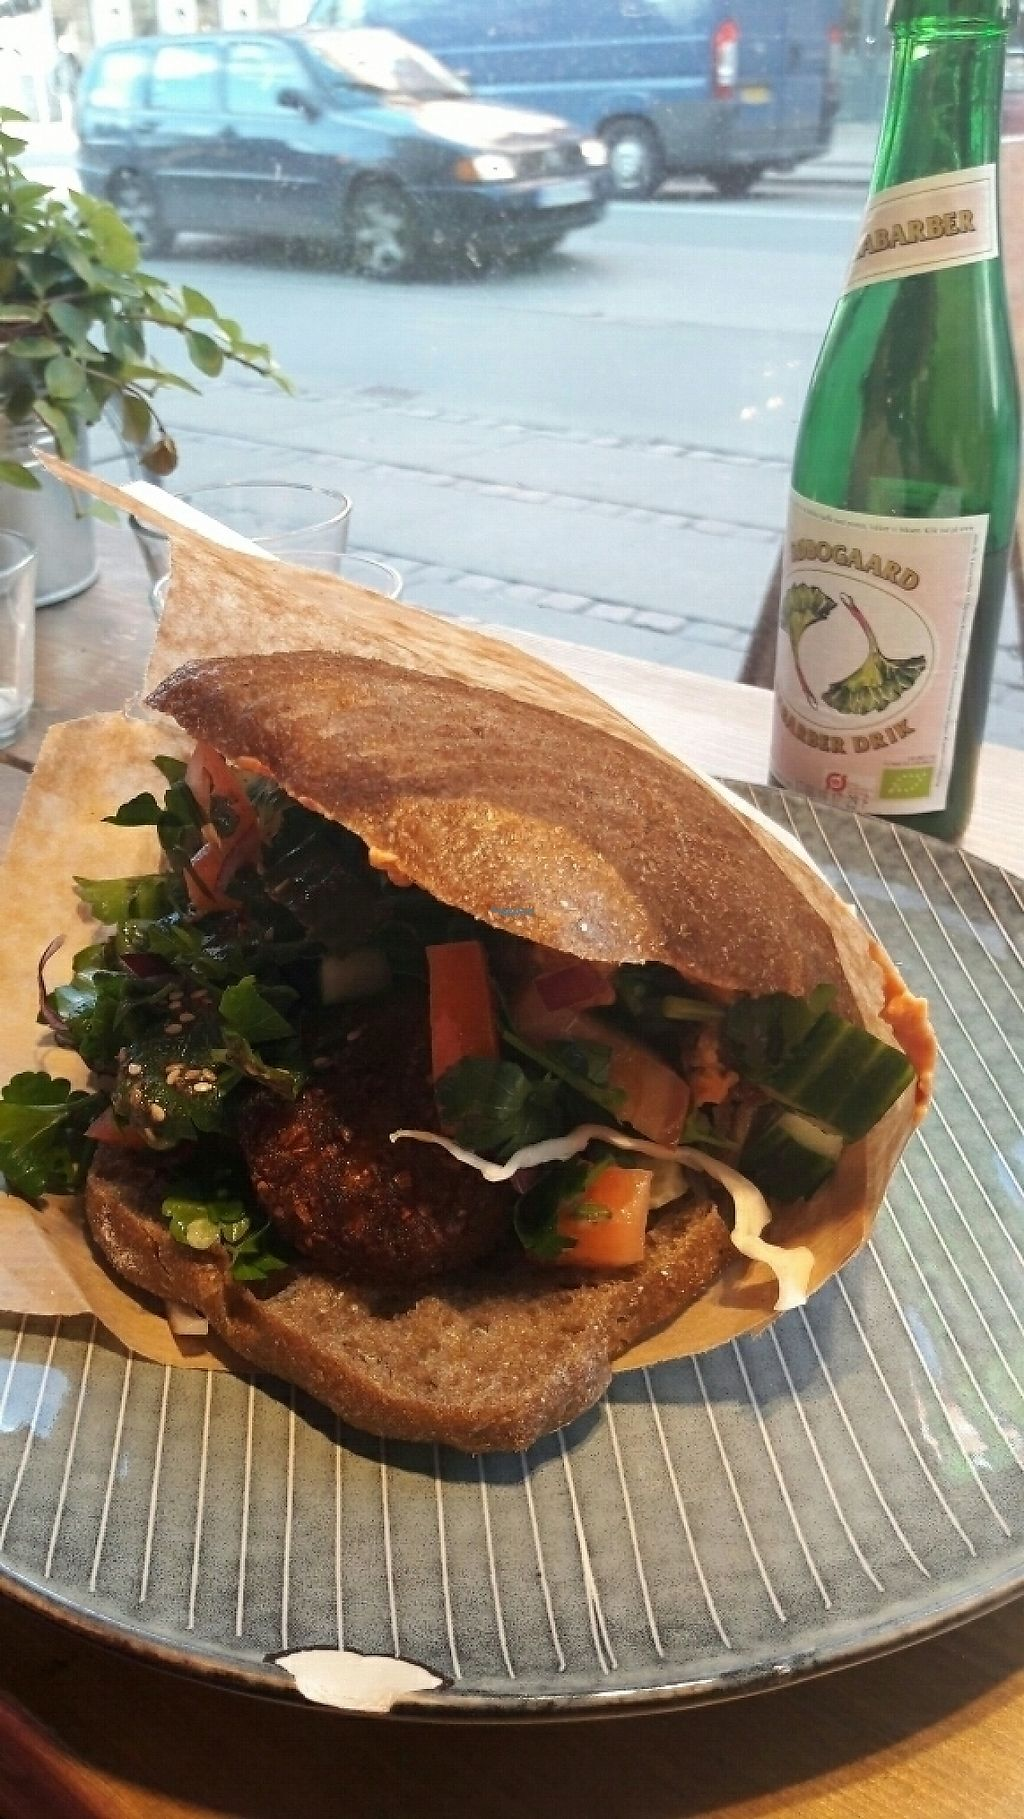 """Photo of Falafel Factory  by <a href=""""/members/profile/piffelina"""">piffelina</a> <br/>Great falafel on dark bread pictured <br/> March 25, 2017  - <a href='/contact/abuse/image/73853/240674'>Report</a>"""